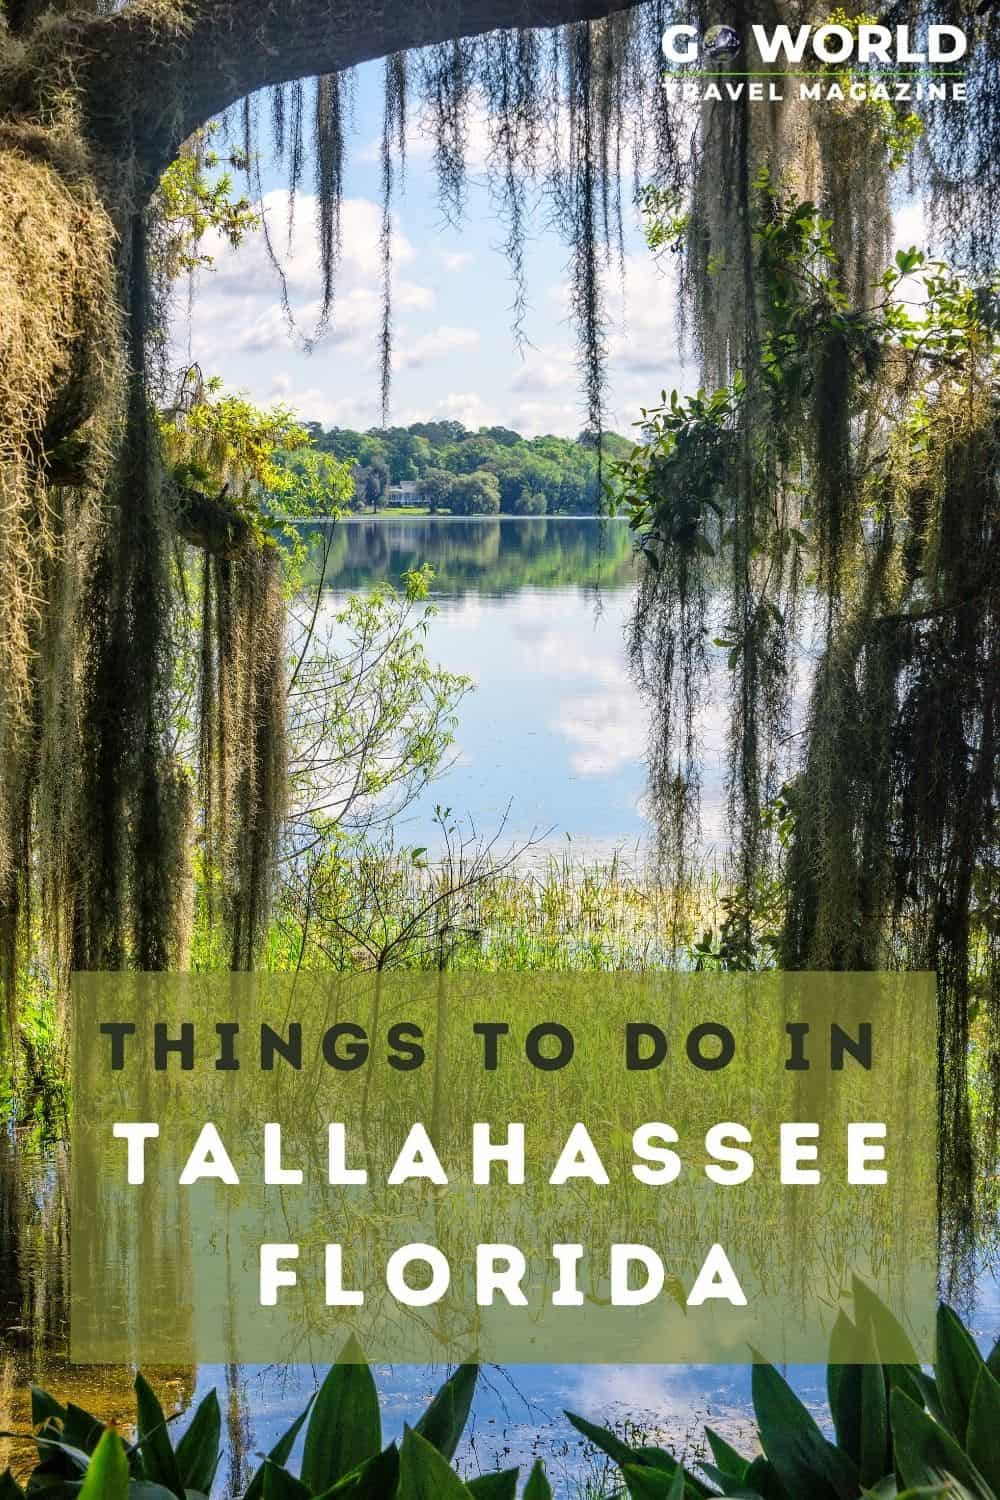 Tallahassee, Florida is best known as a college town but there's so much more. Here's a  list of fun & unexpected things to do in Tallahassee.